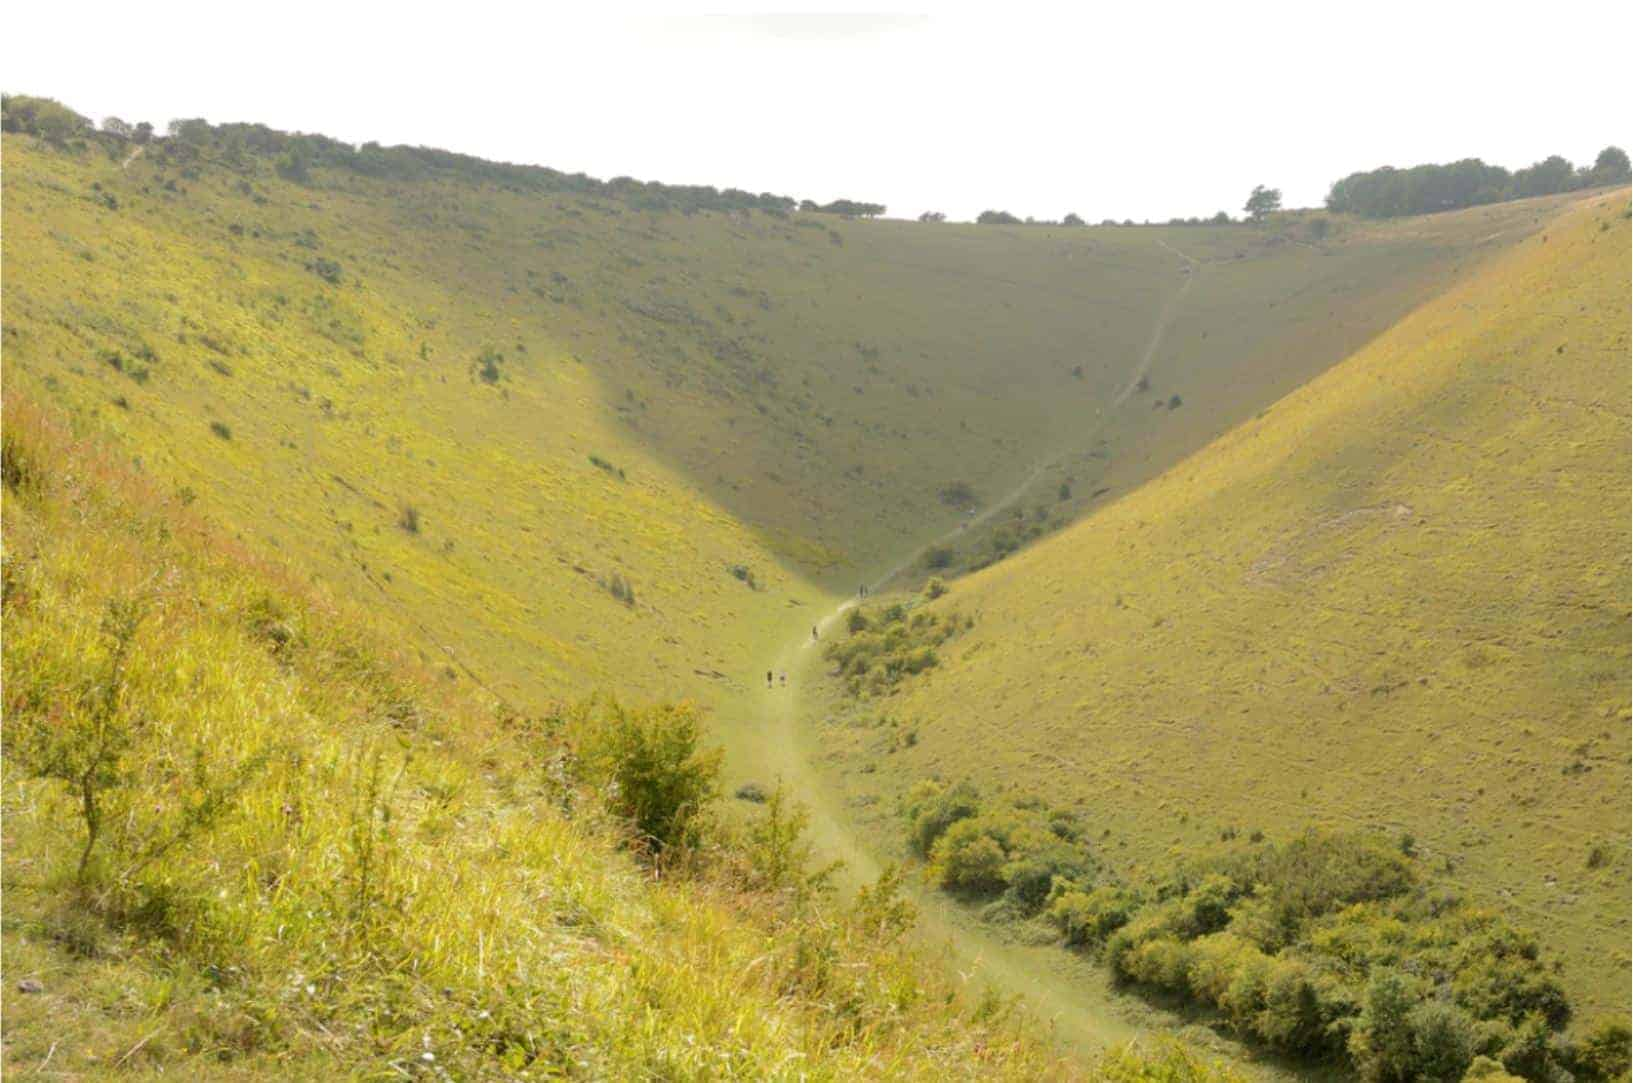 Looking down at the incredible Dyke Valley, South Downs Way